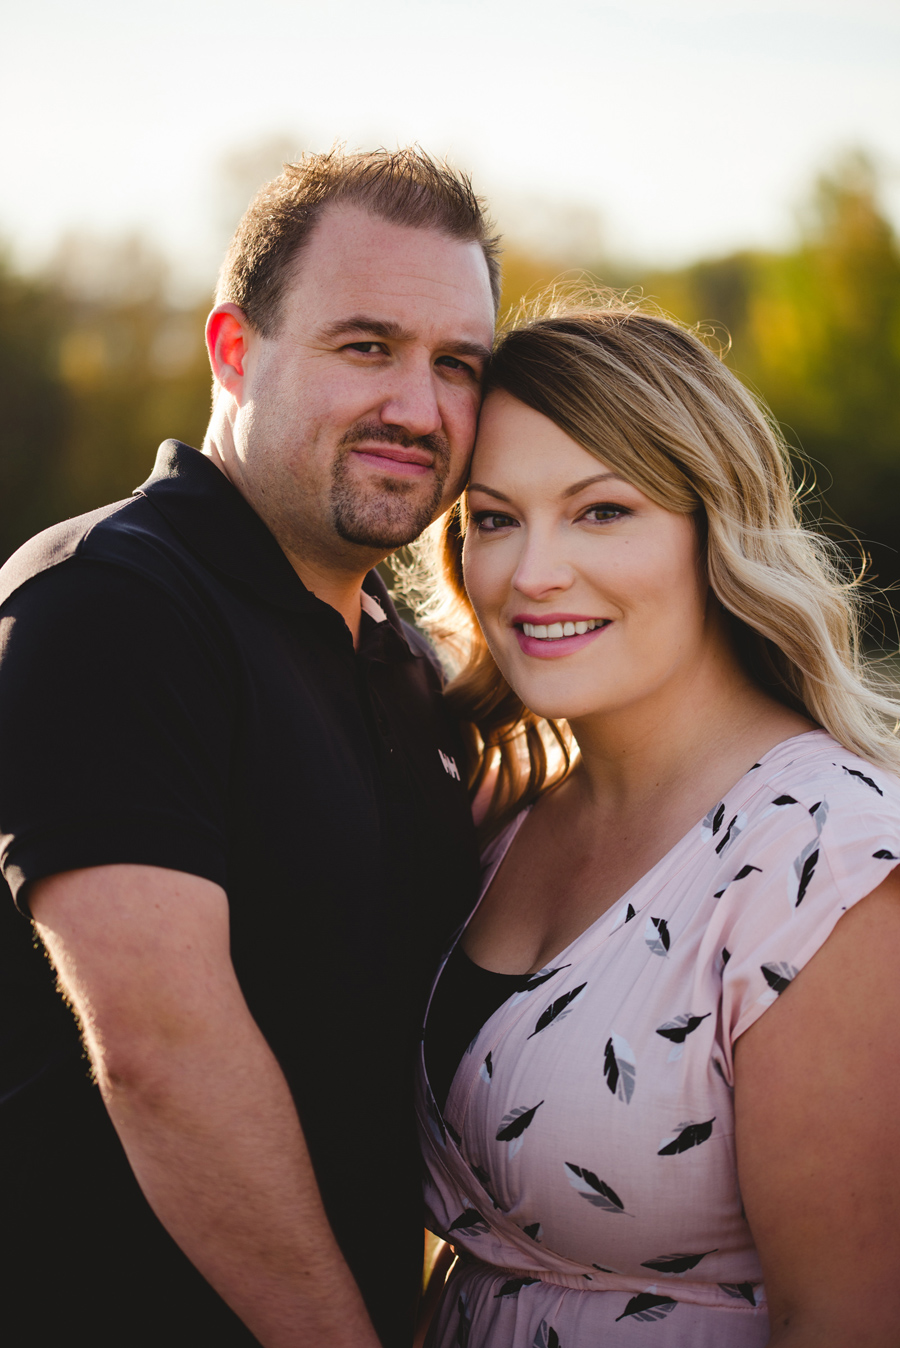 bbcollective_yeg_2016_marilynandian_engagement_photography023.jpg